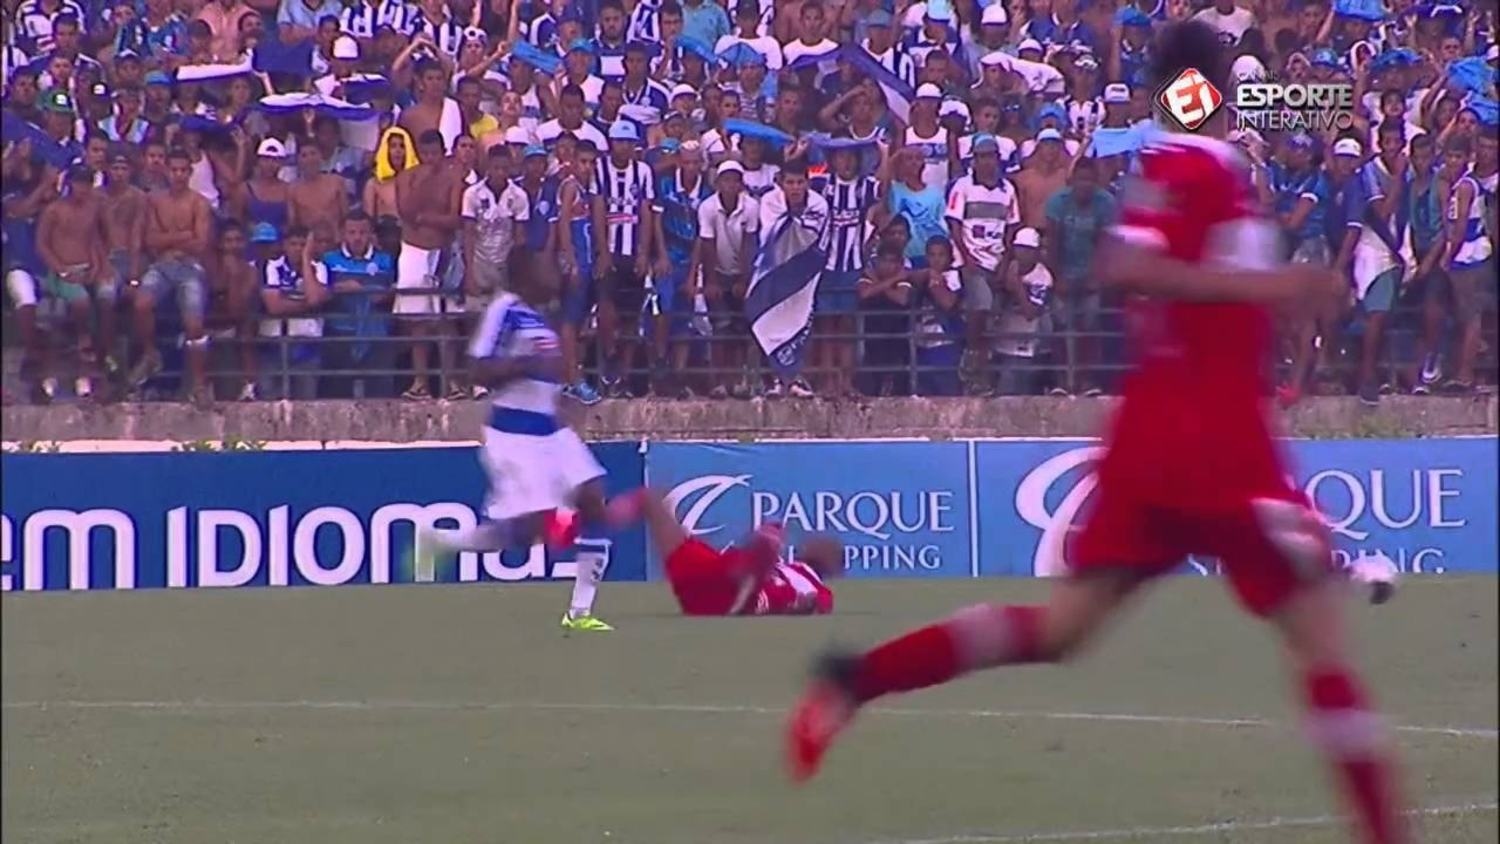 Brazilian player trips like a real-life FIFA glitch